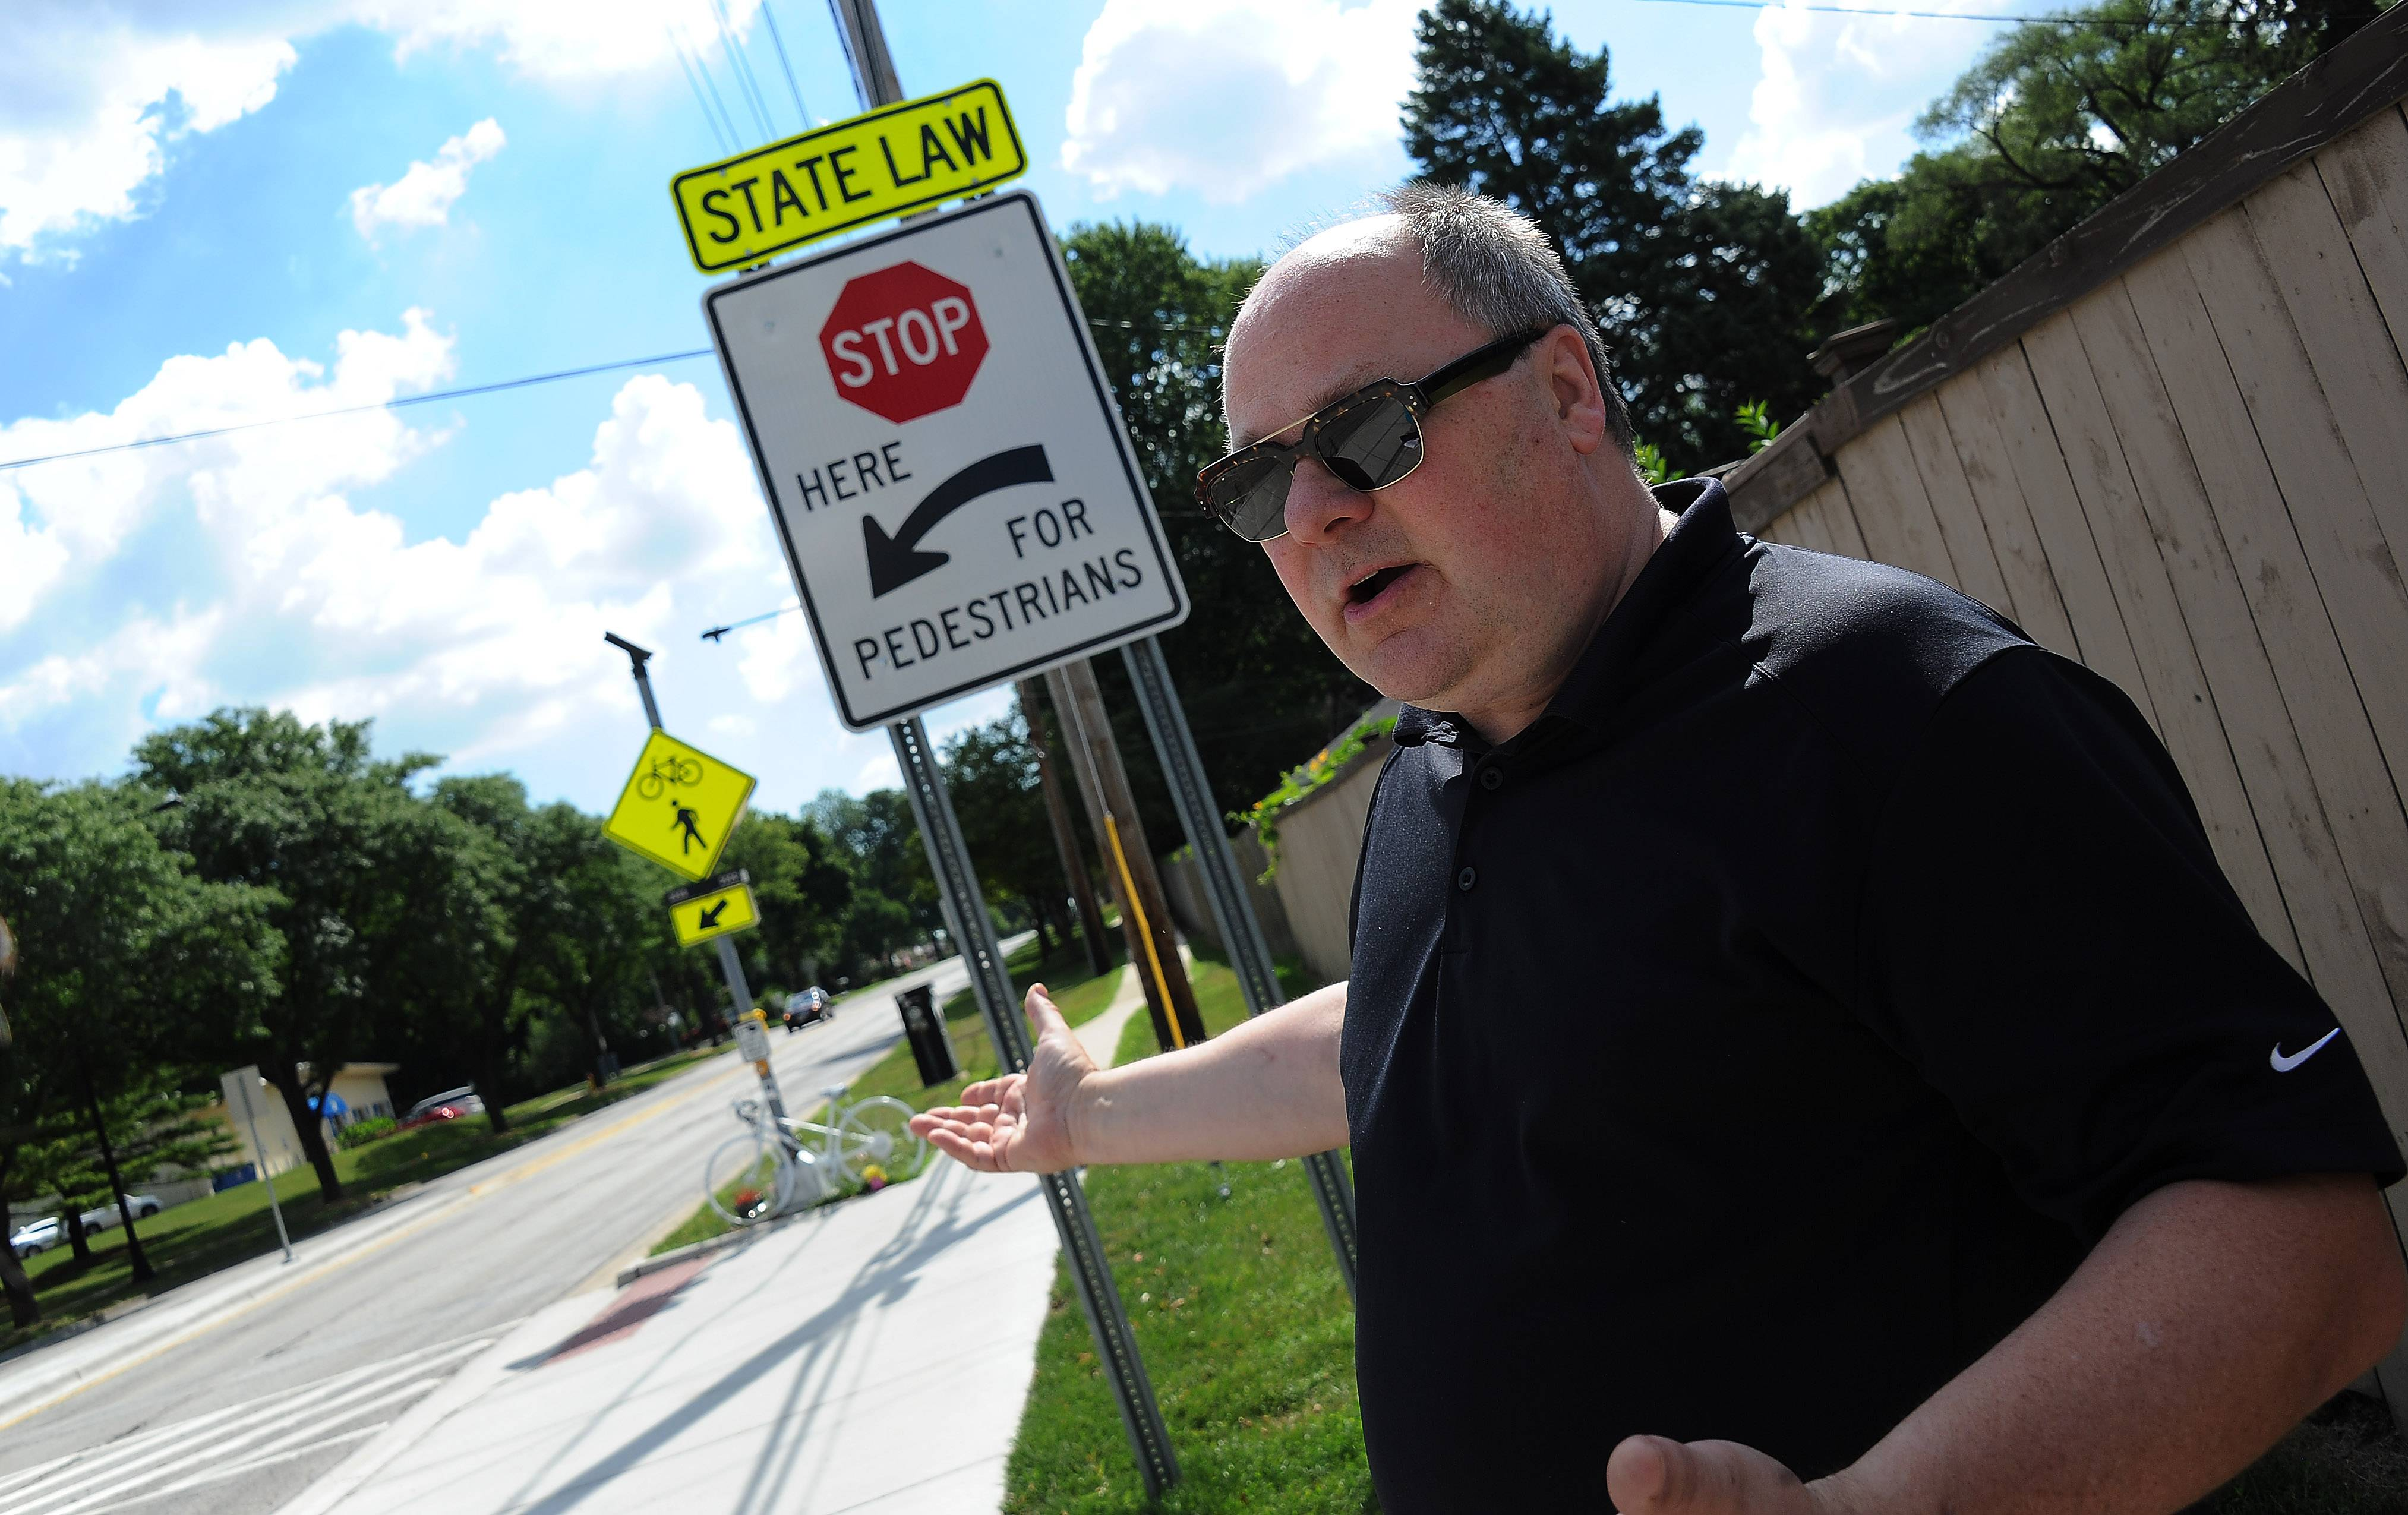 Eric Jakubowski of Mount Prospect has said the crosswalk on Central Road across from Melas Park is confusing and gives a false sense of security after a driver killed his wife there in June.